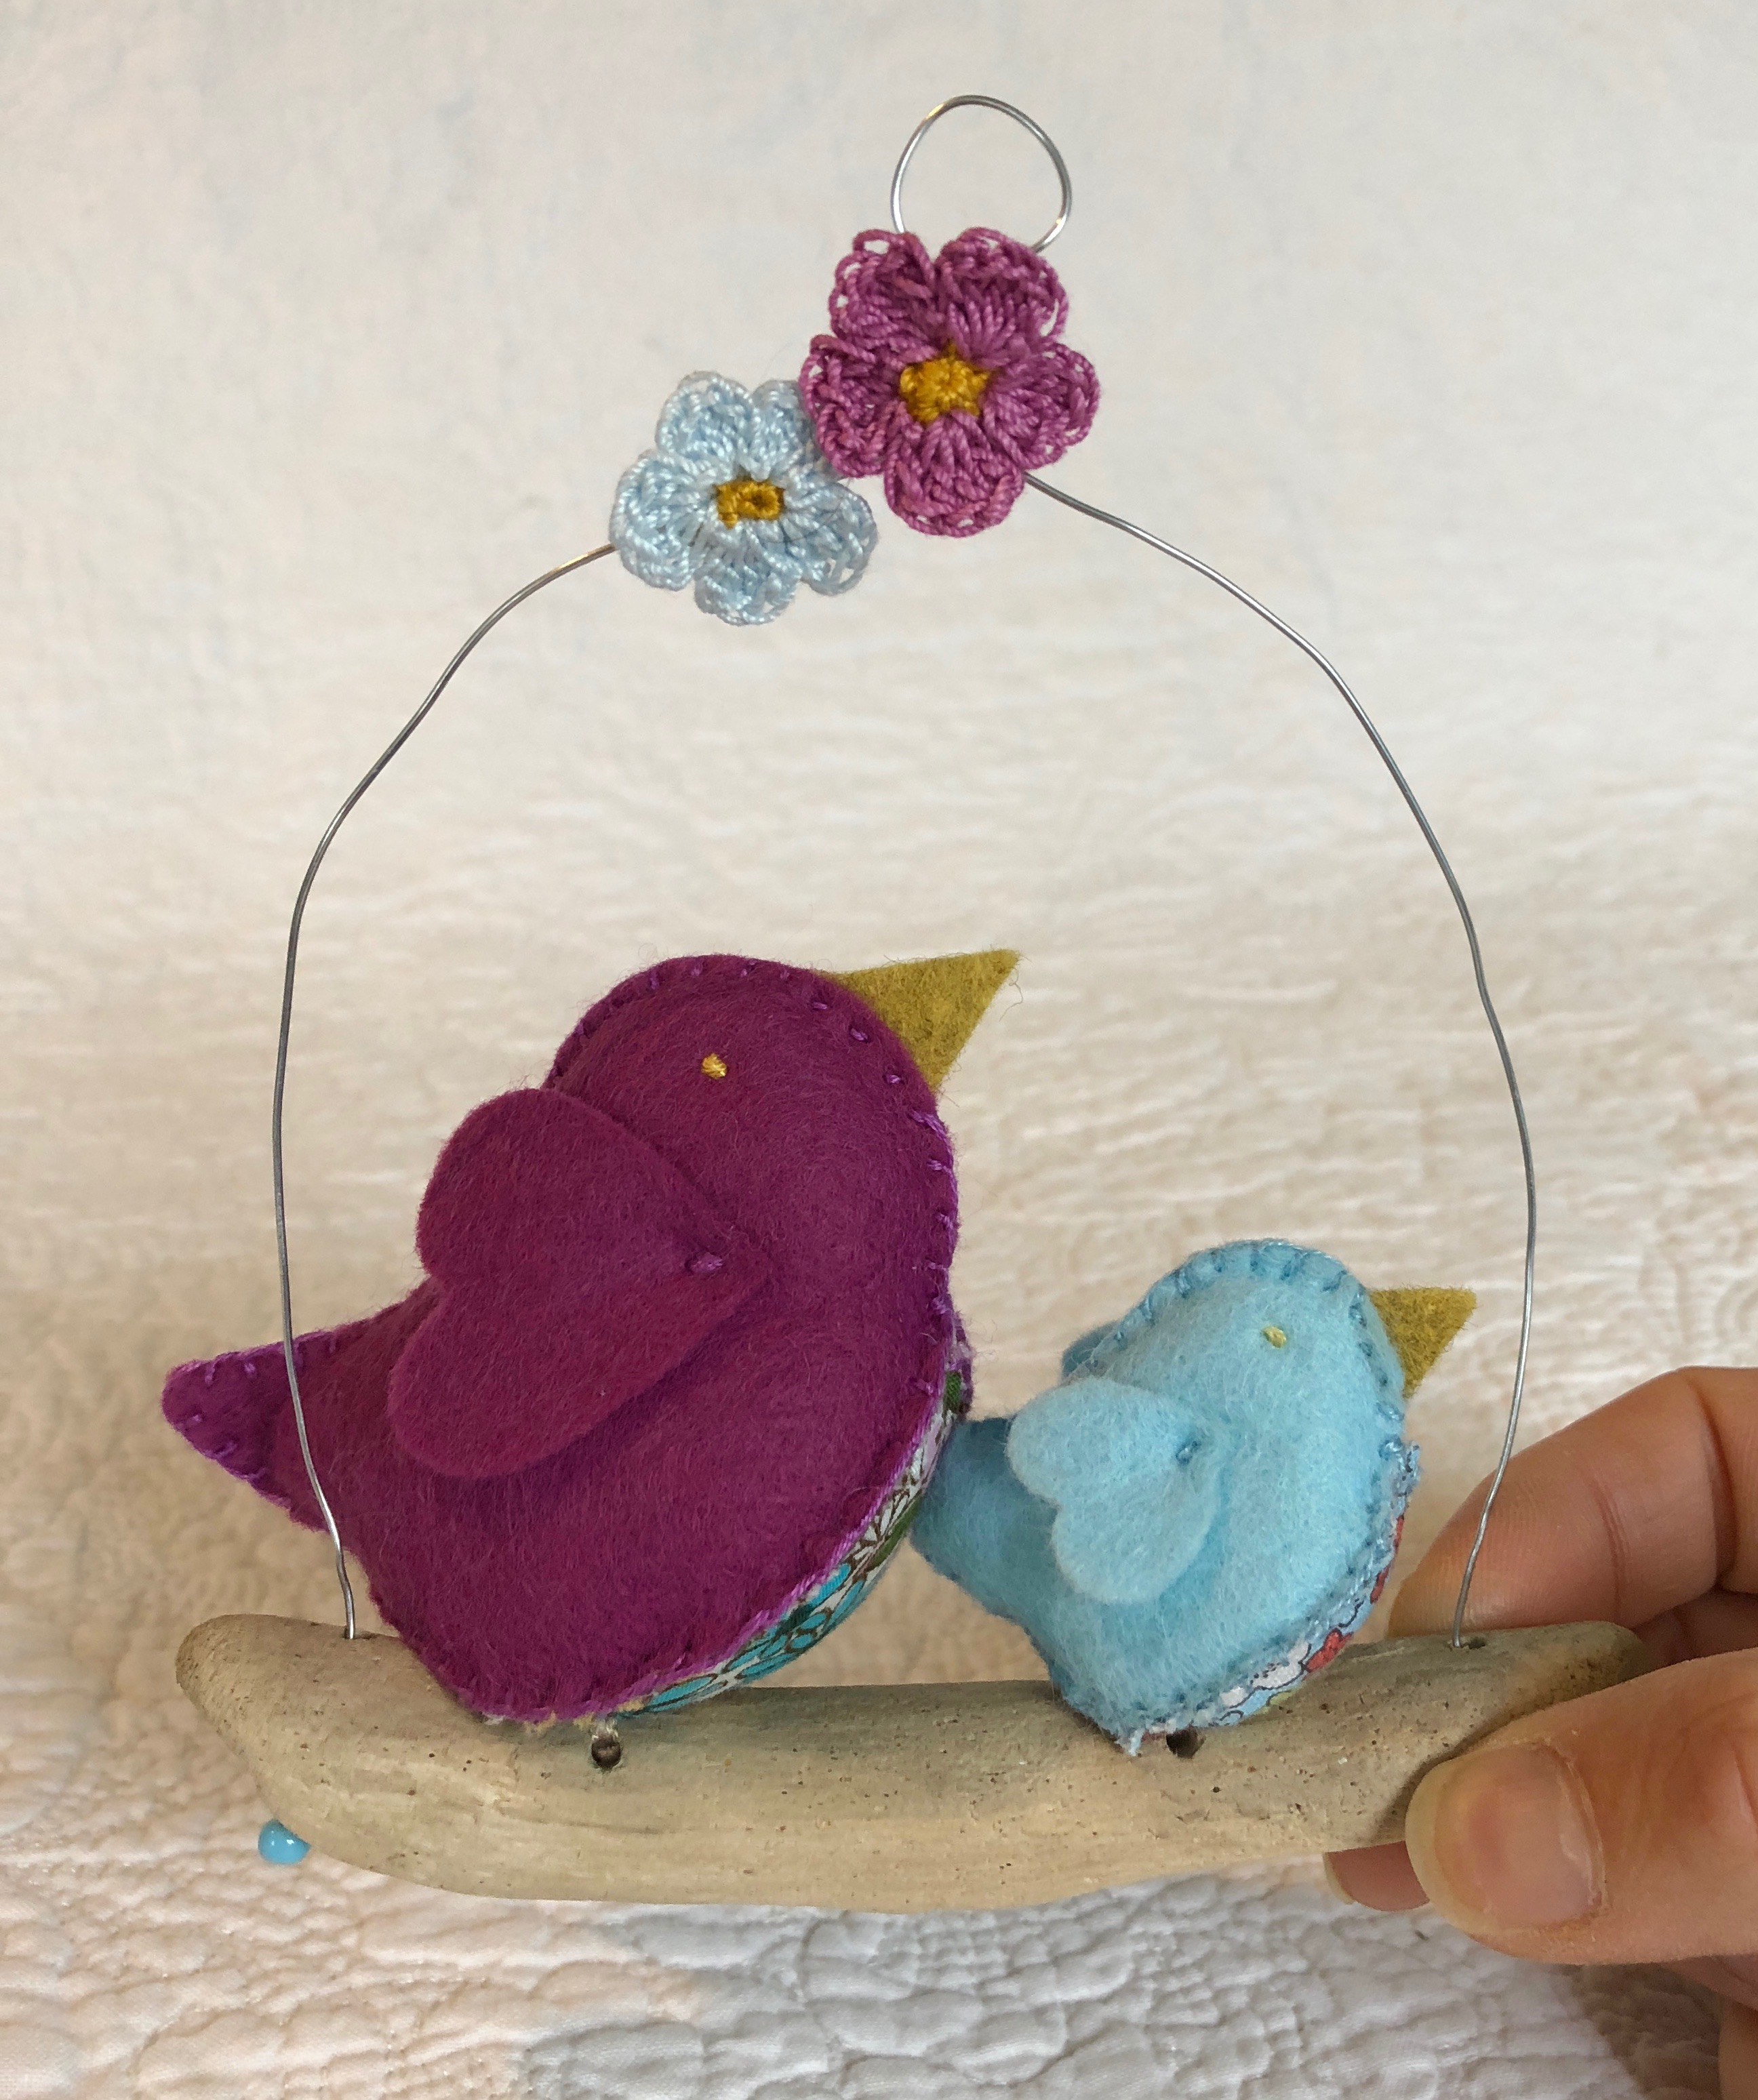 Hanging decoration. Hand sewn felt and floral cotton fabric little birds on a driftwood branch.